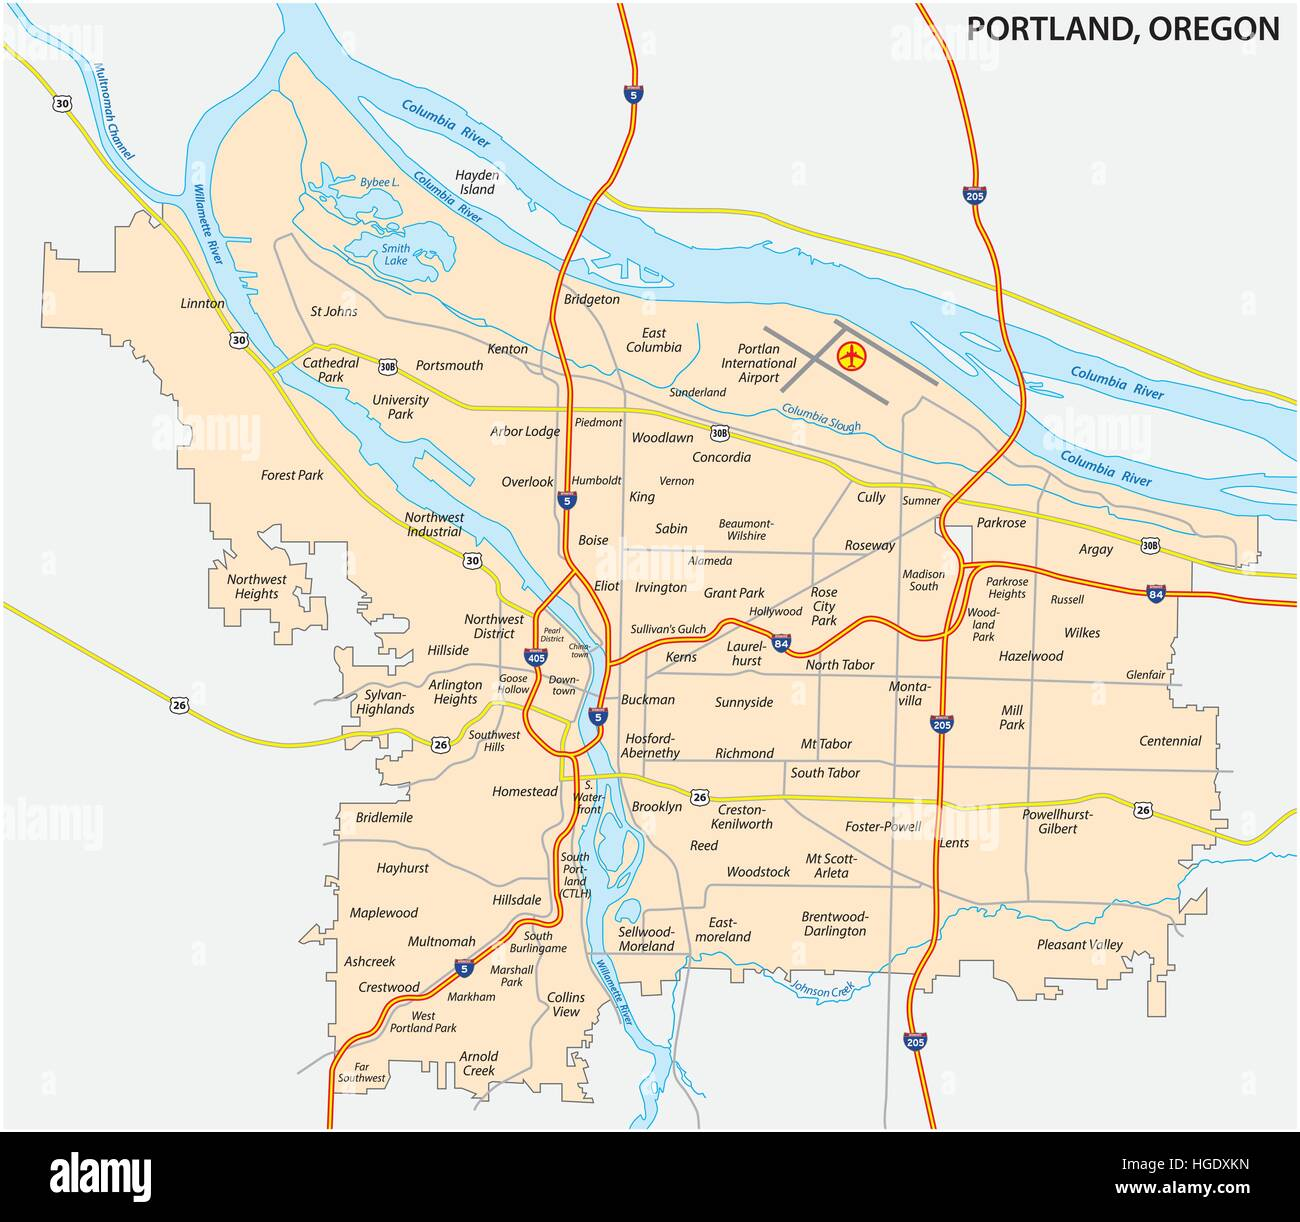 Road And Neighborhood Map Of Portland Oregon Stock Vector Art - Oregon road maps